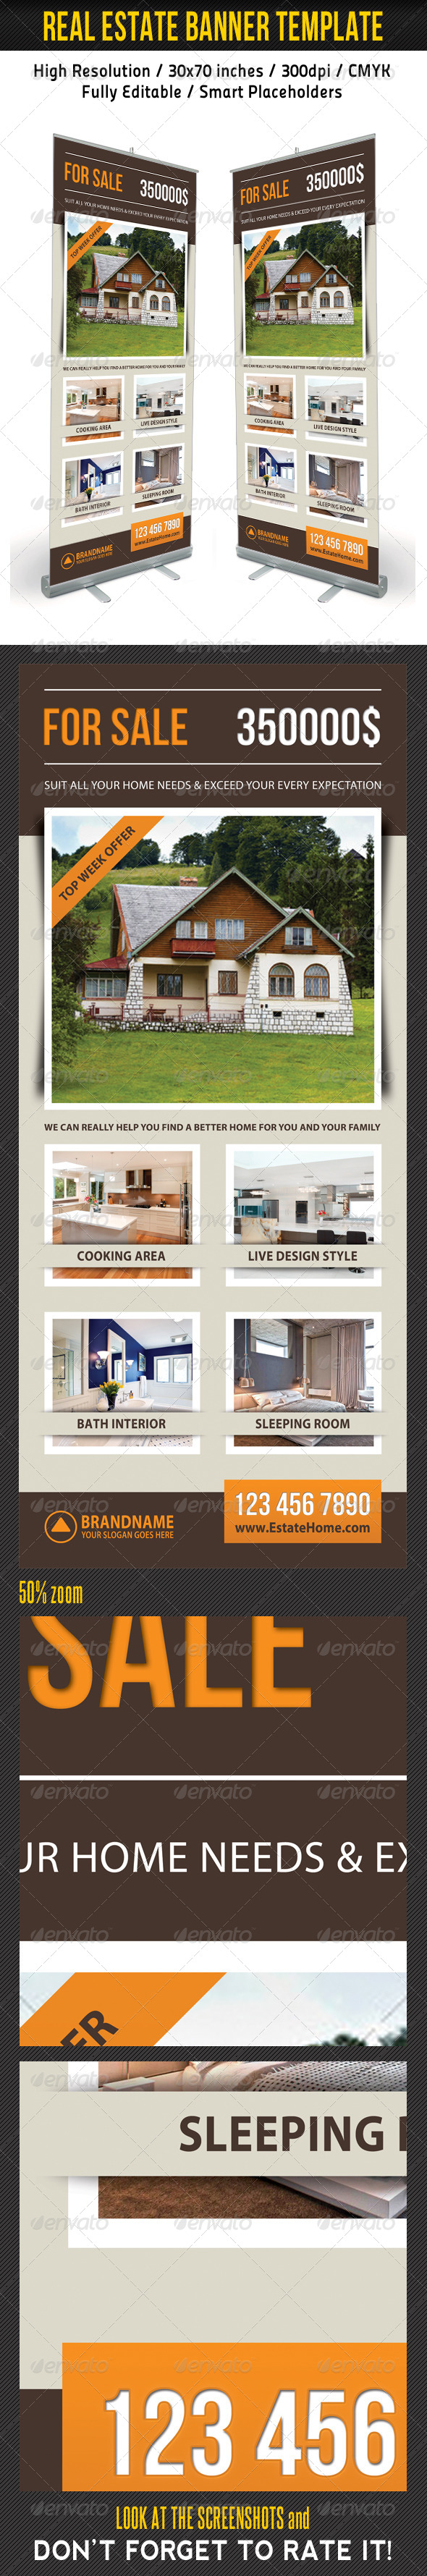 Real Estate Banner Template 13 - Signage Print Templates